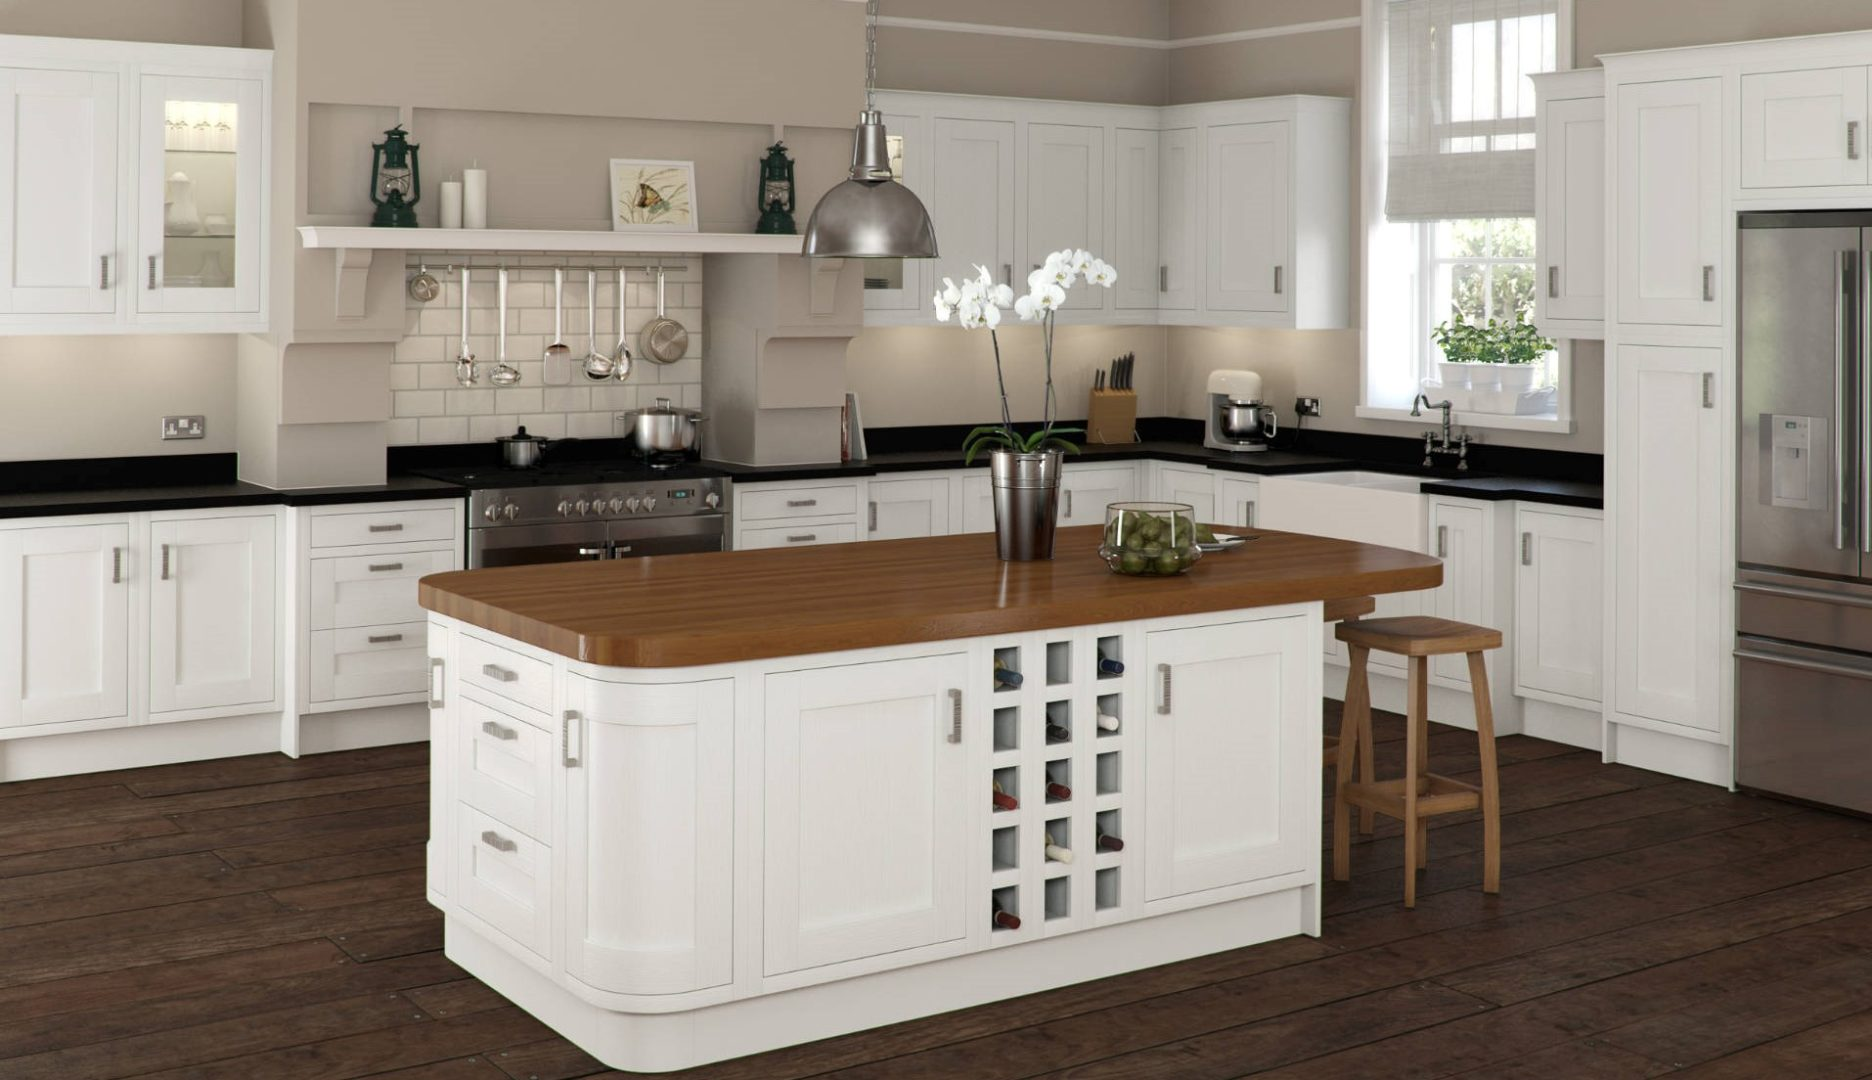 Ivory Foil Kitchen with Wooden Island and Black Countertips